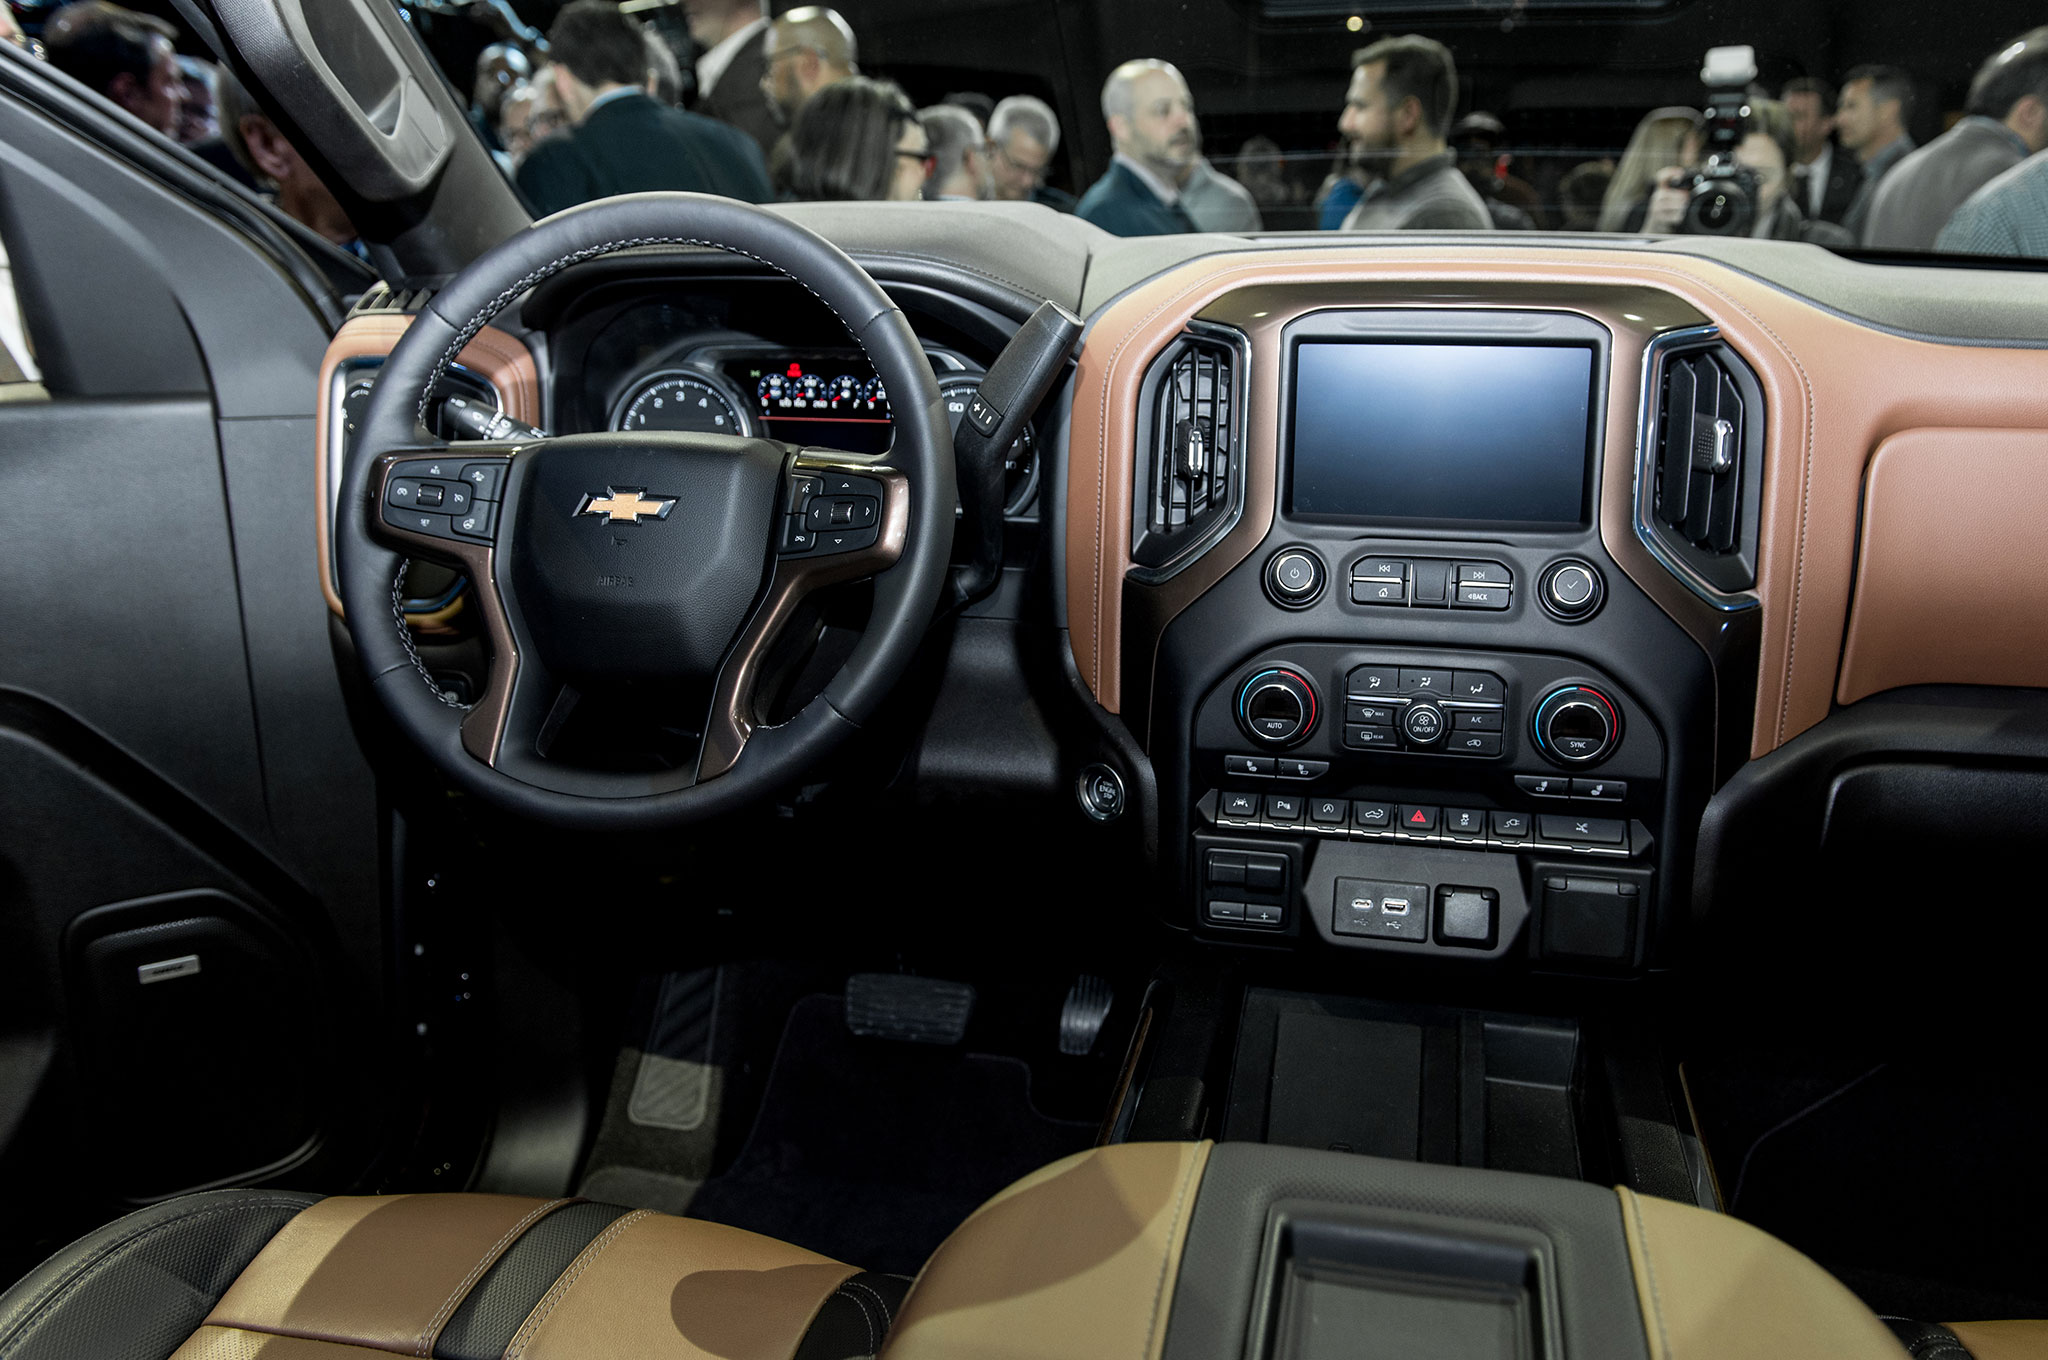 2019 Chevrolet Silverado 1500 High Country Interior